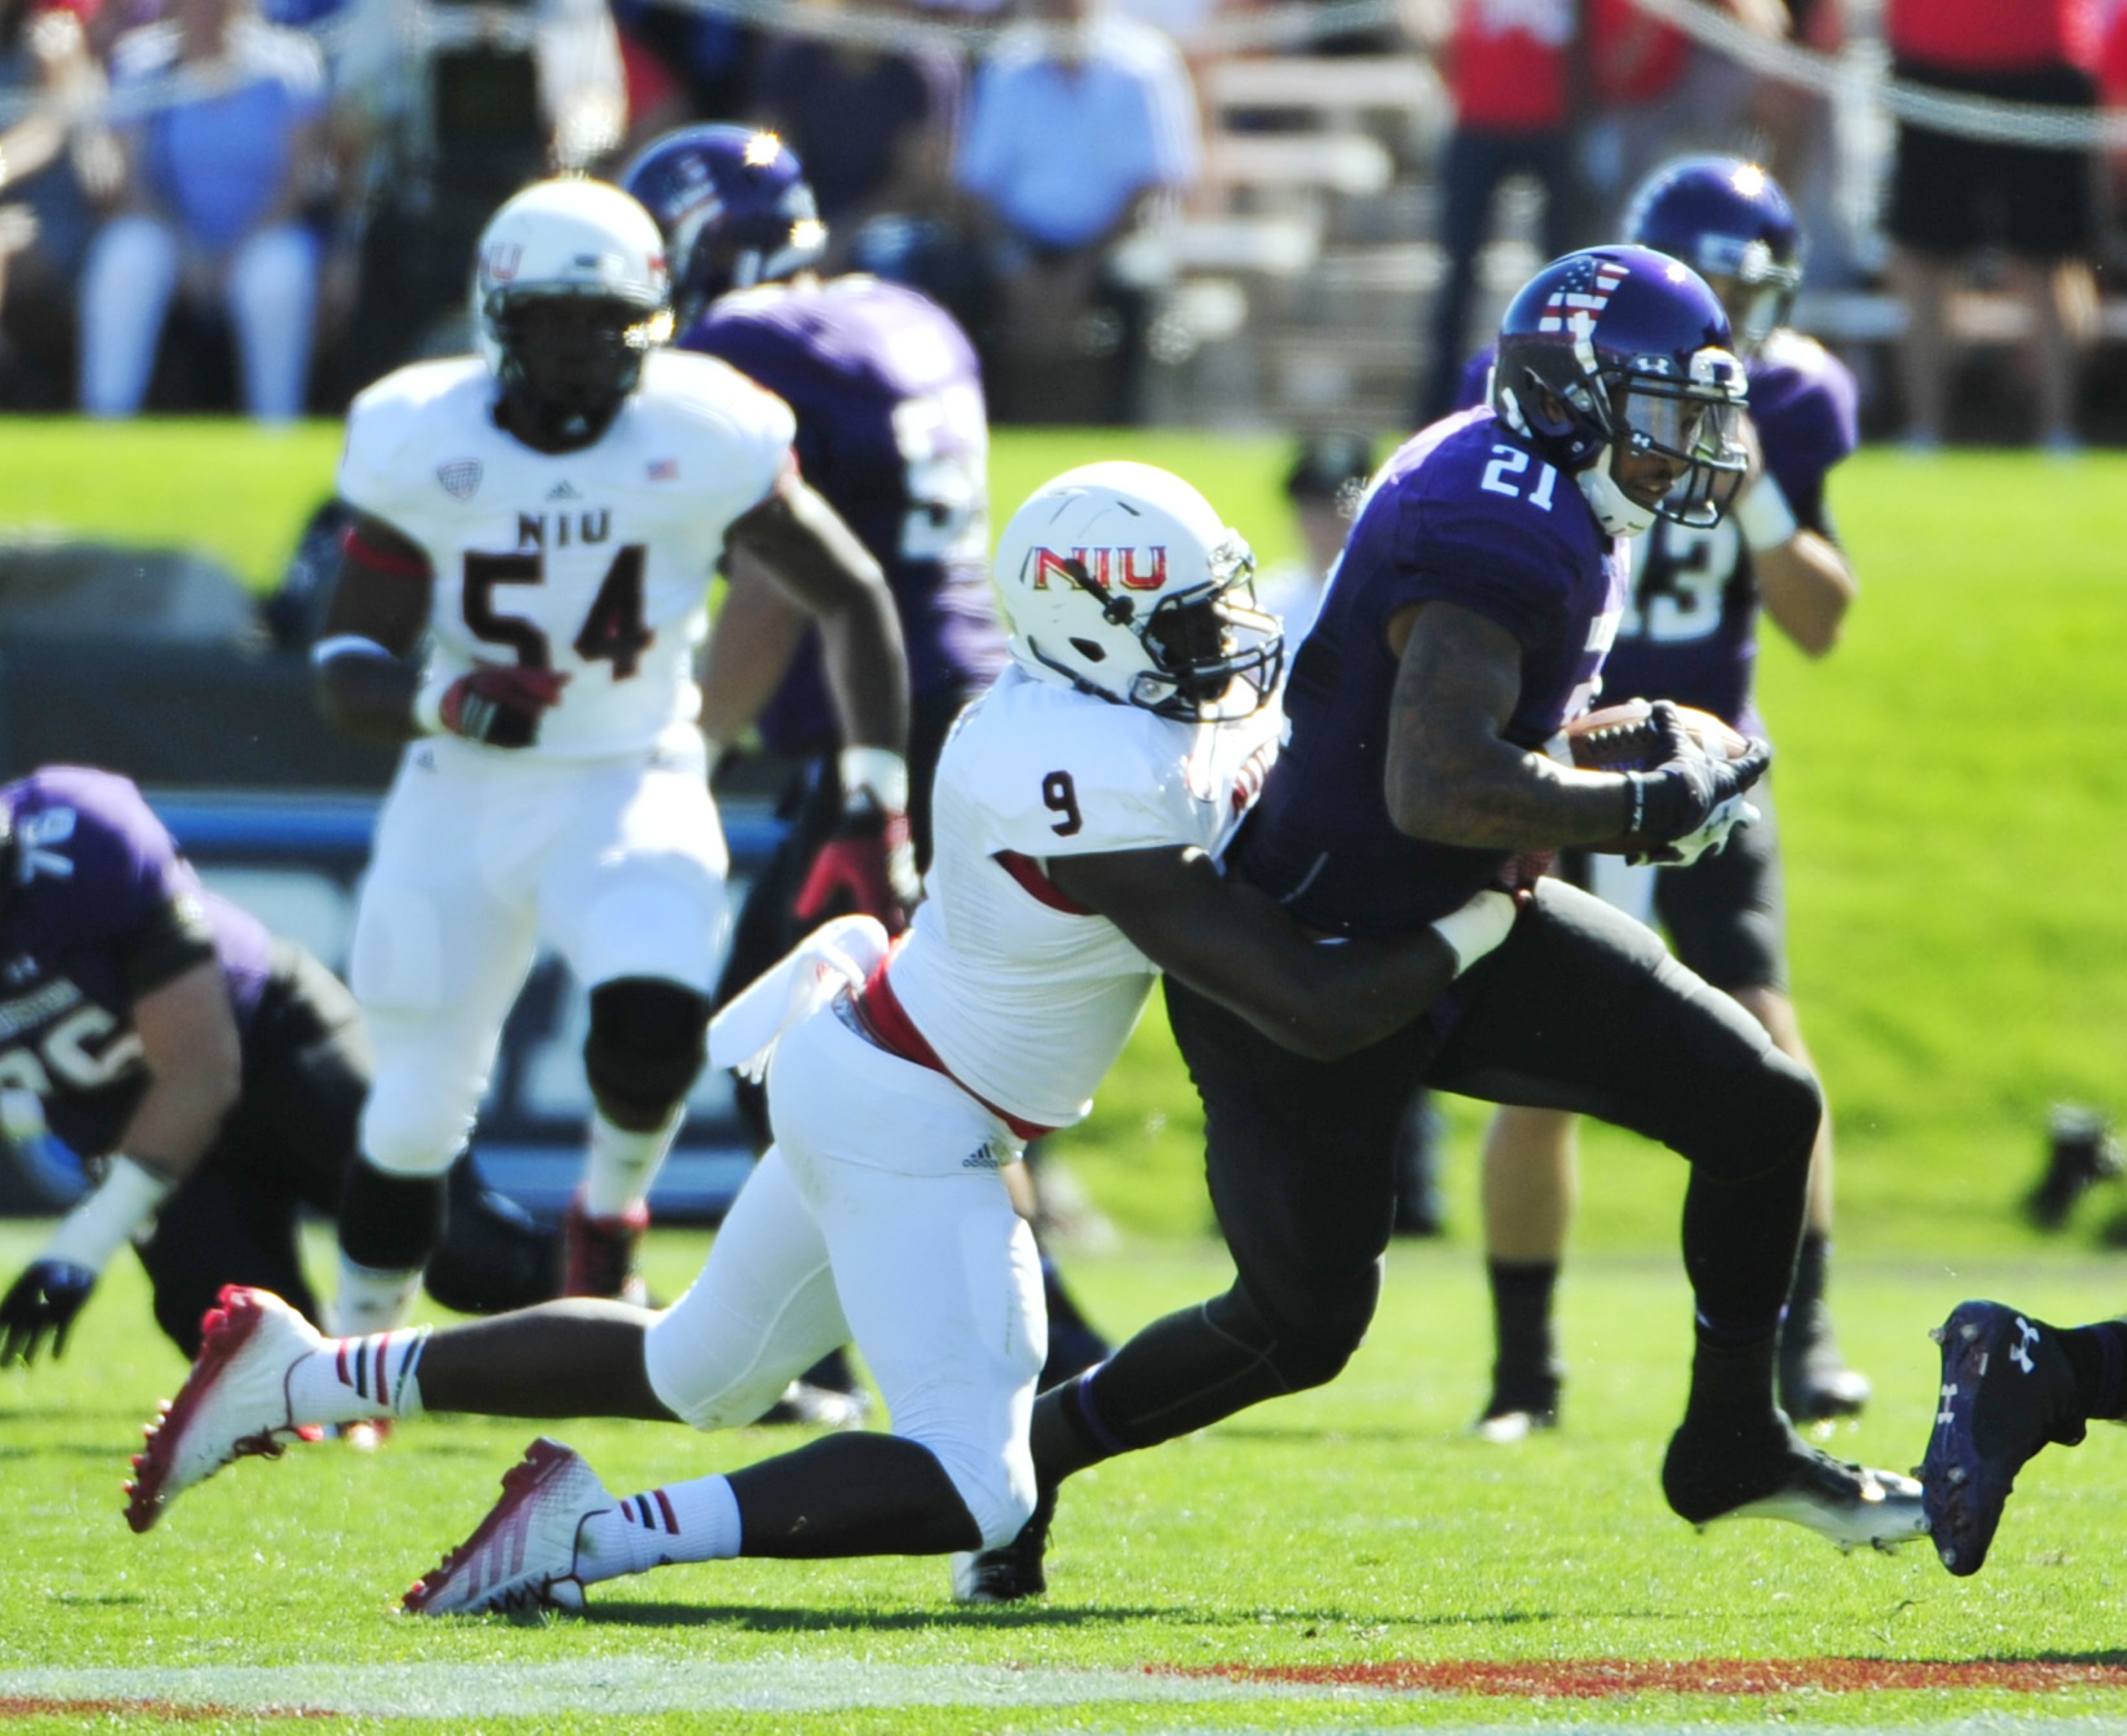 EVANSTON, IL- SEPTEMBER 06: Kyle Prater #21 of the Northwestern Wildcats* is tackled by Rasheen Lemon #9 of the Northern Illinois Huskies on September 6, 2014 at Ryan Field in Evanston, Illinois. (Photo by David Banks/Getty Images)